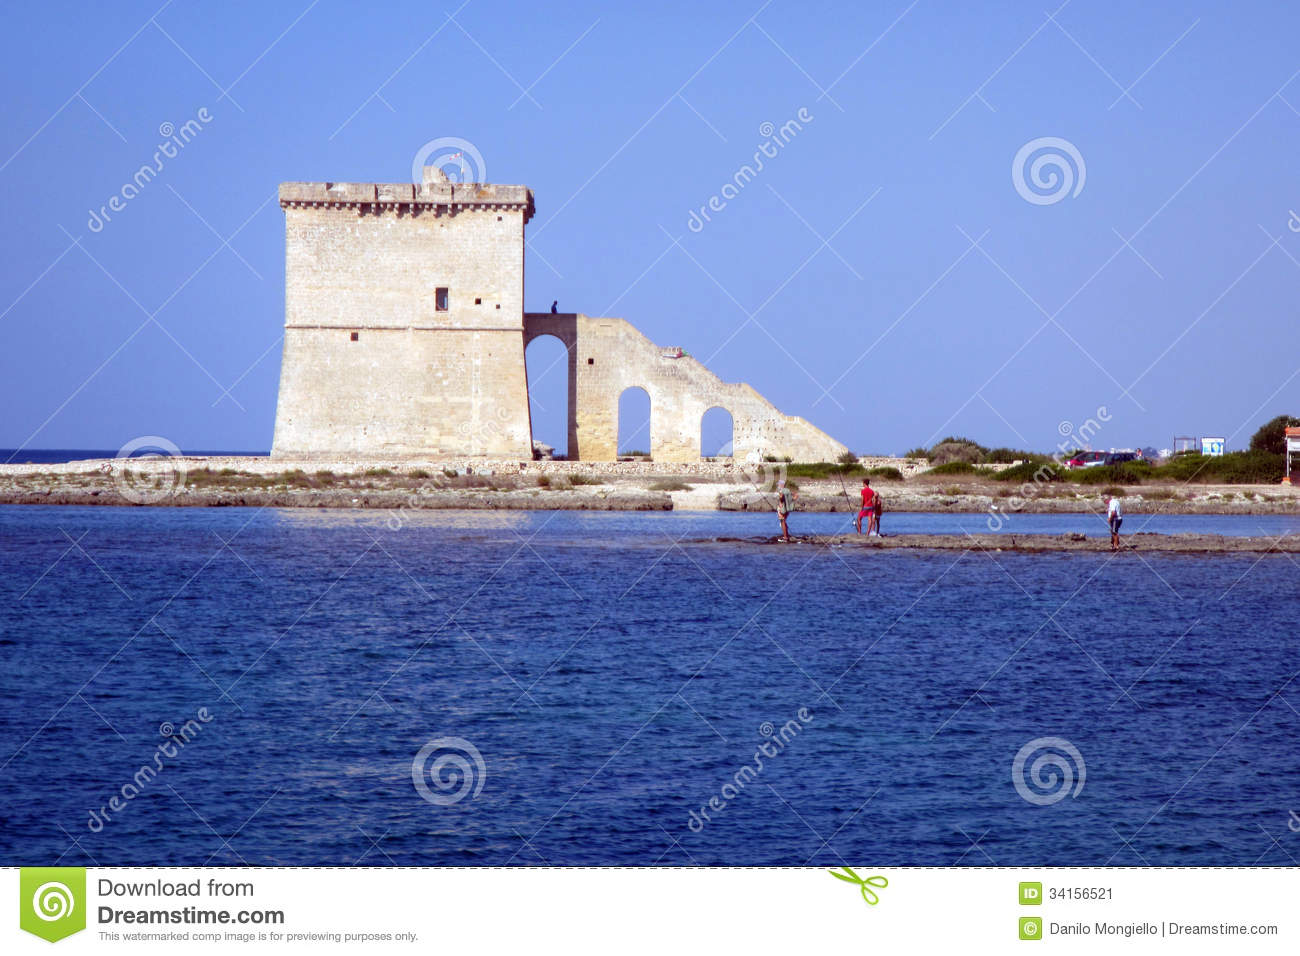 Torre Lapillo Italy  city images : The old historic saracen tower on the sea torre lapillo in italy.